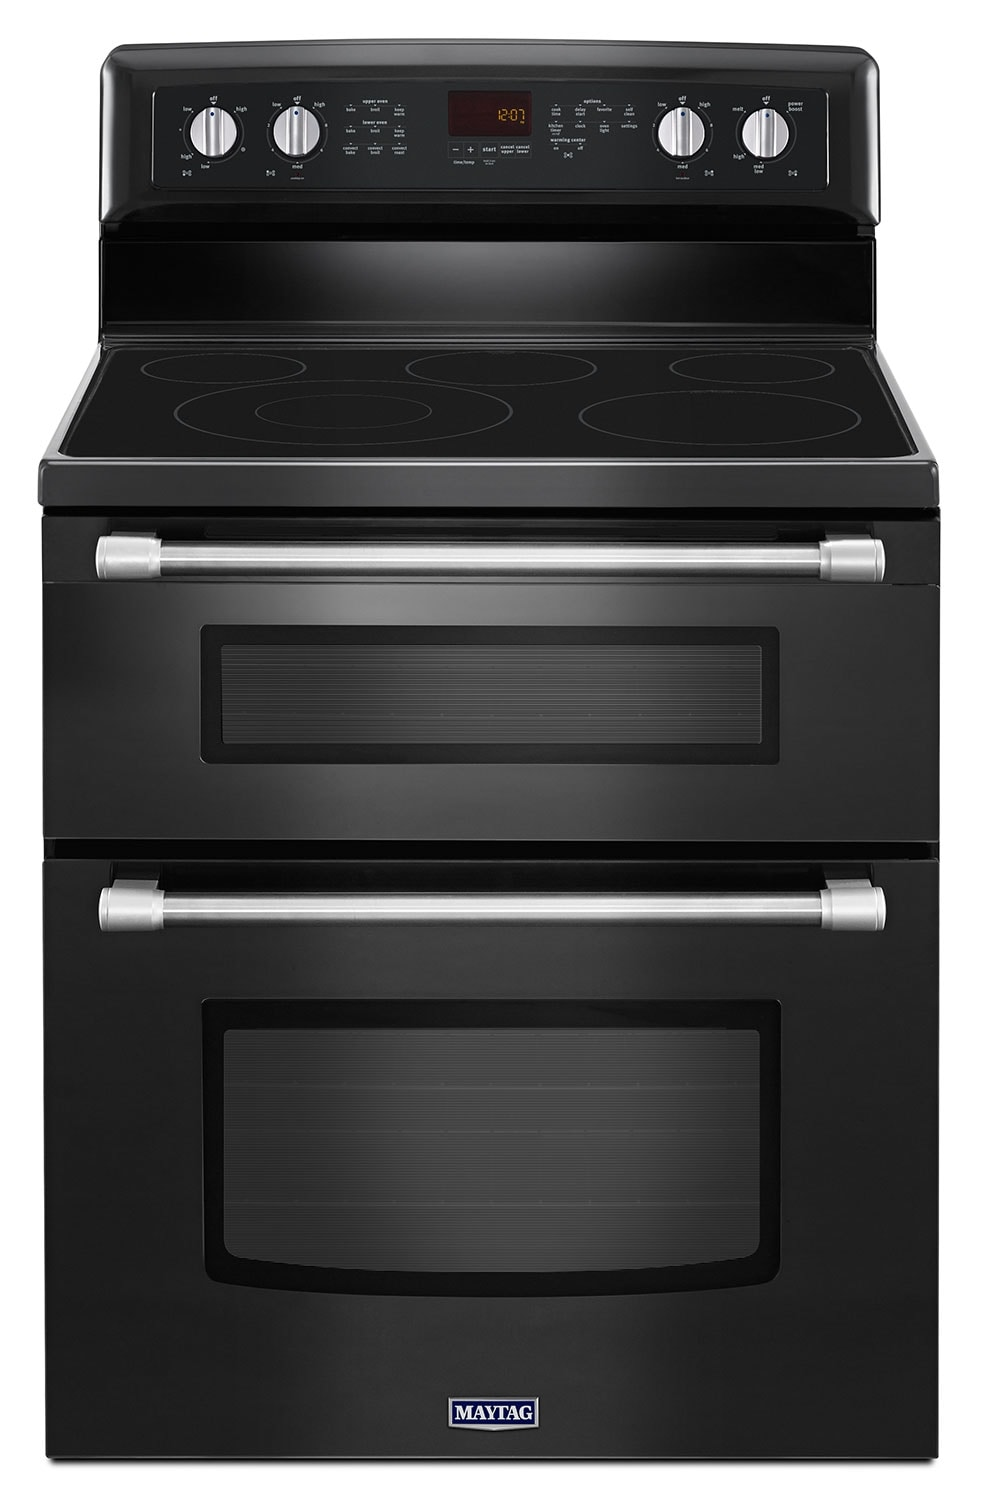 Cooking Products - Maytag 6.7 Cu. Ft. Double Oven Electric Range – YMET8720DE